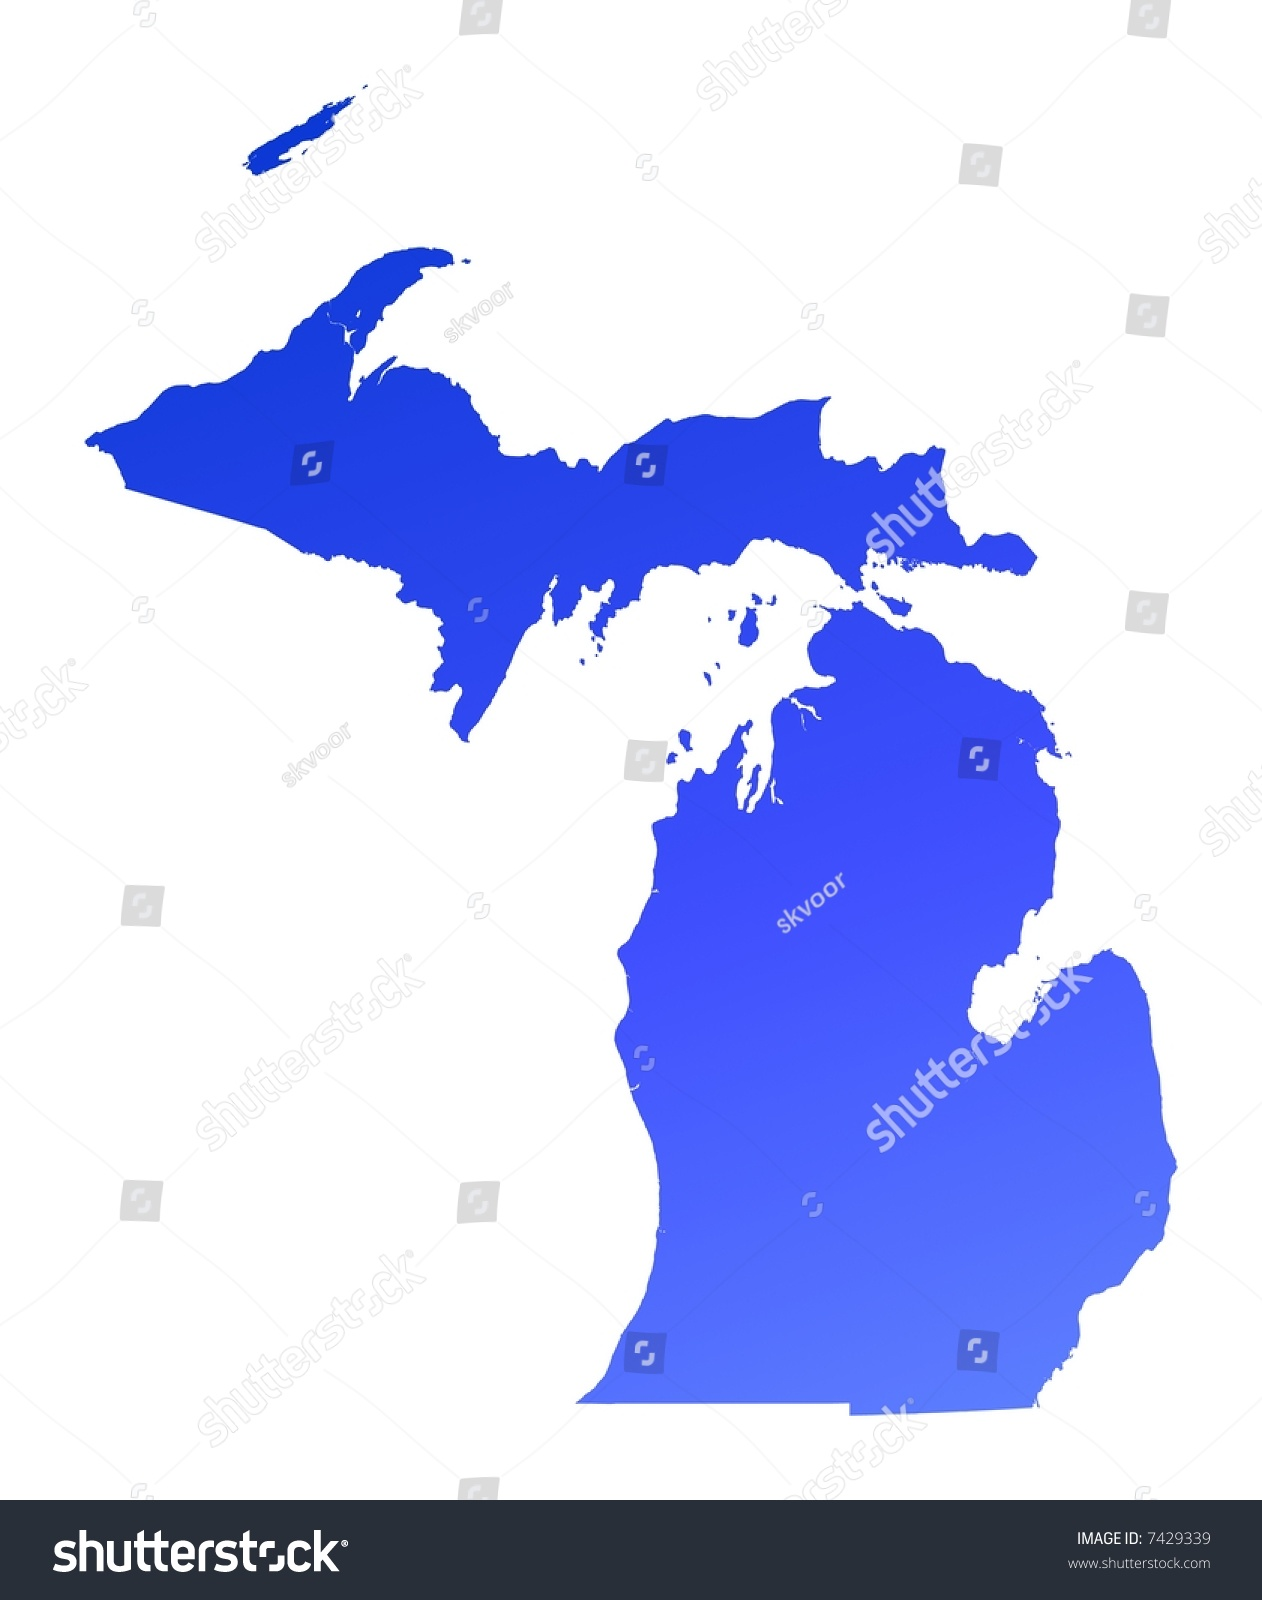 Map Of State Of Michigan With Its Cities Towns And Counties Been - Michigan on a map of the usa